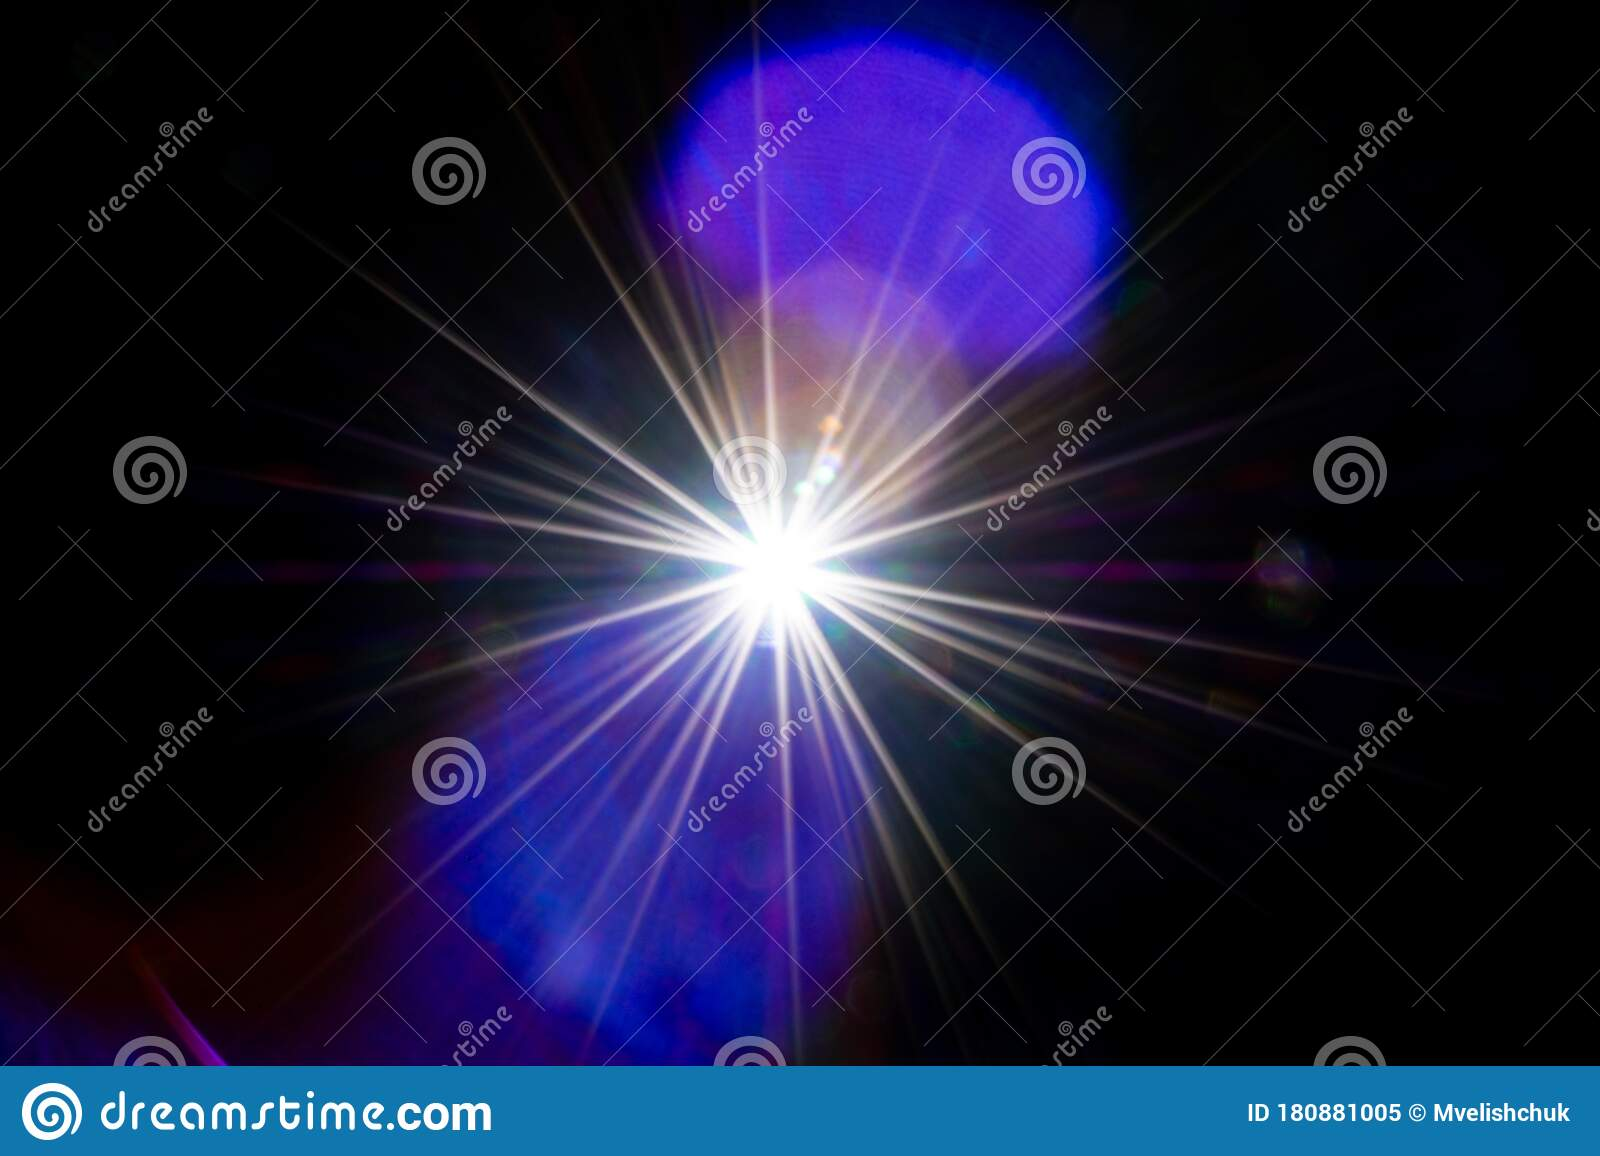 412 Dust Overlay Sun Photos Free Royalty Free Stock Photos From Dreamstime